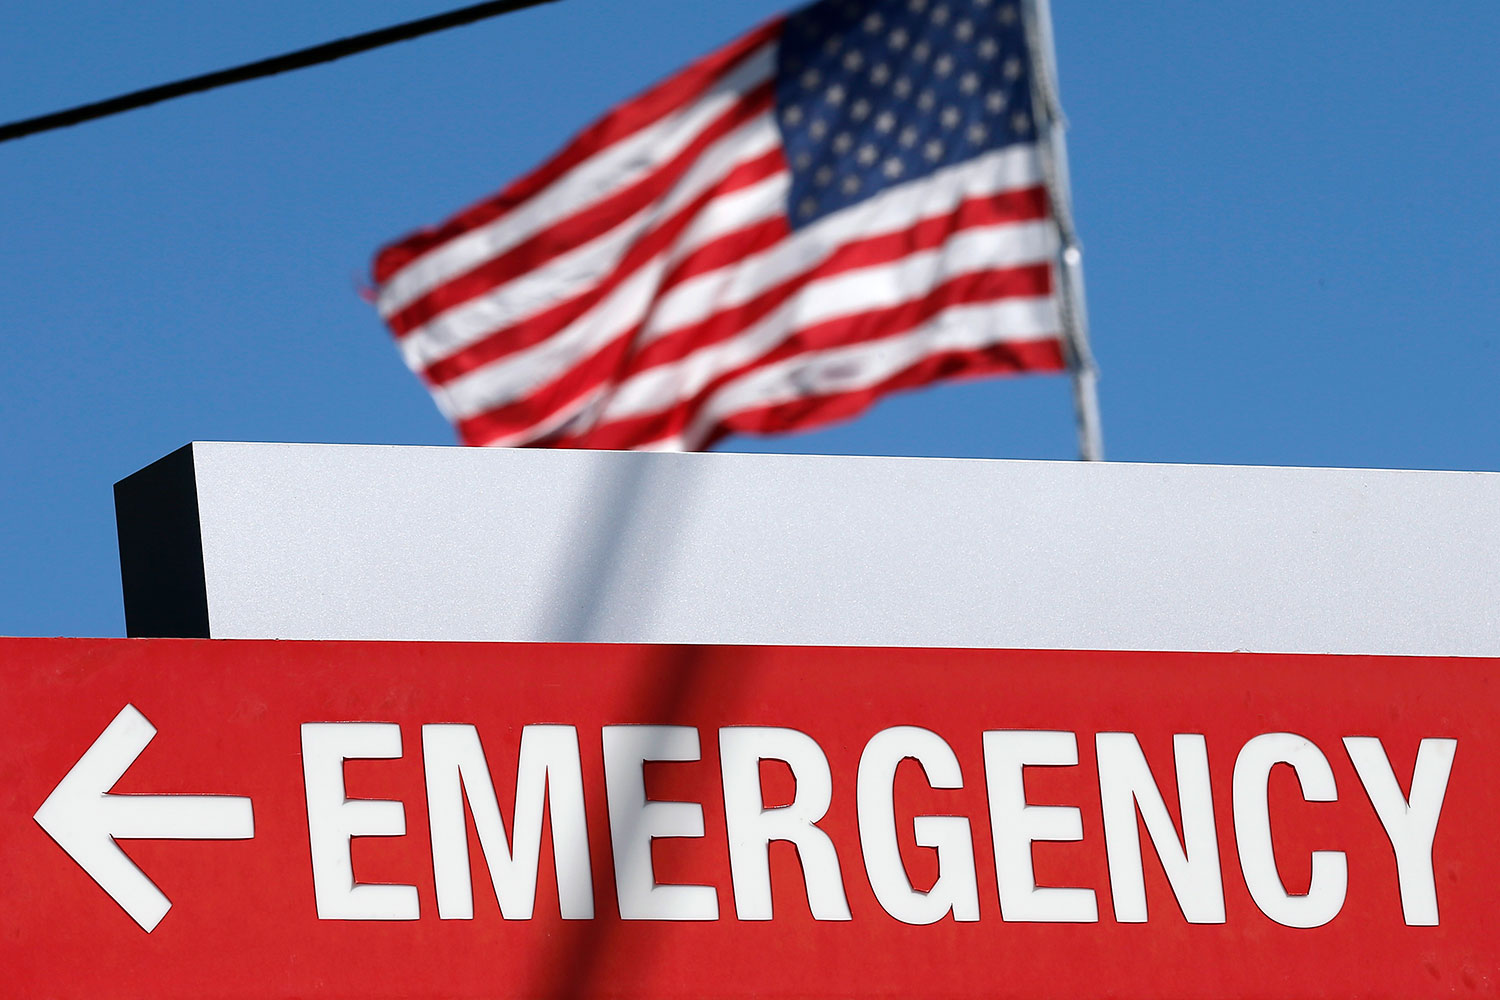 "An entrance sign to the Texas Health Presbyterian Hospital in Dallas, Texas, on October 4, 2014. The sign says ""EMERGENCY"" and points to the left. In the background we can see an American flag billowing against a brilliant clear blue sky. REUTERS/Jim Young"